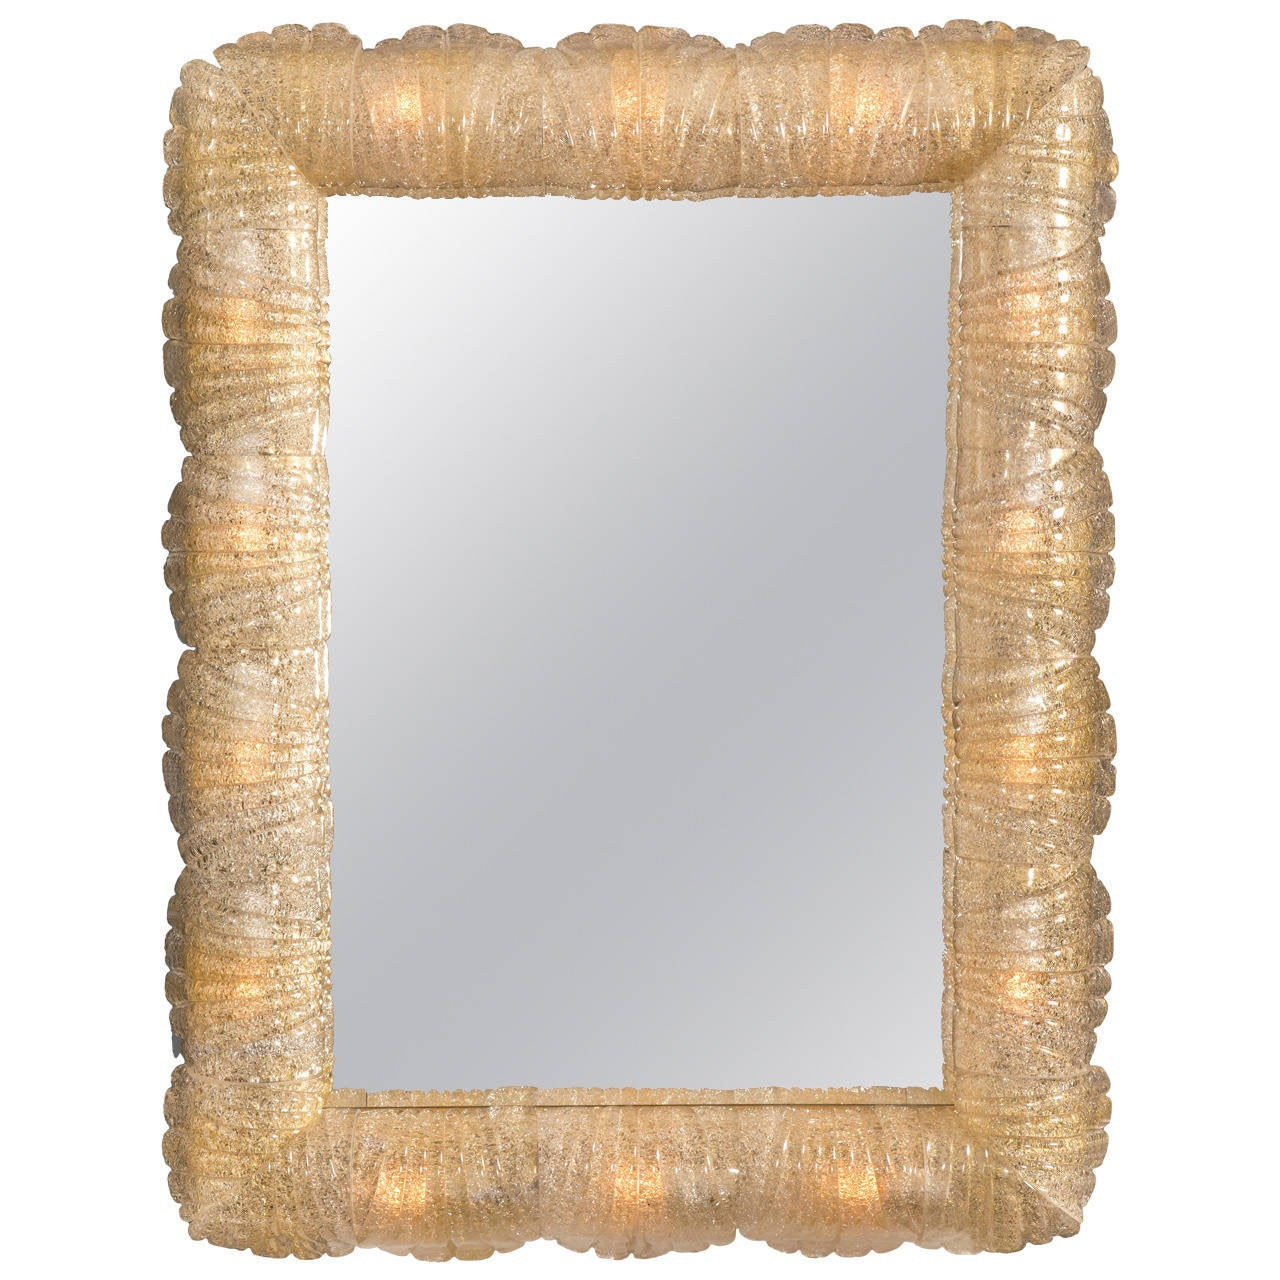 Barovier and Toso, Murano Illuminated Rugiadoso Glass Mirror